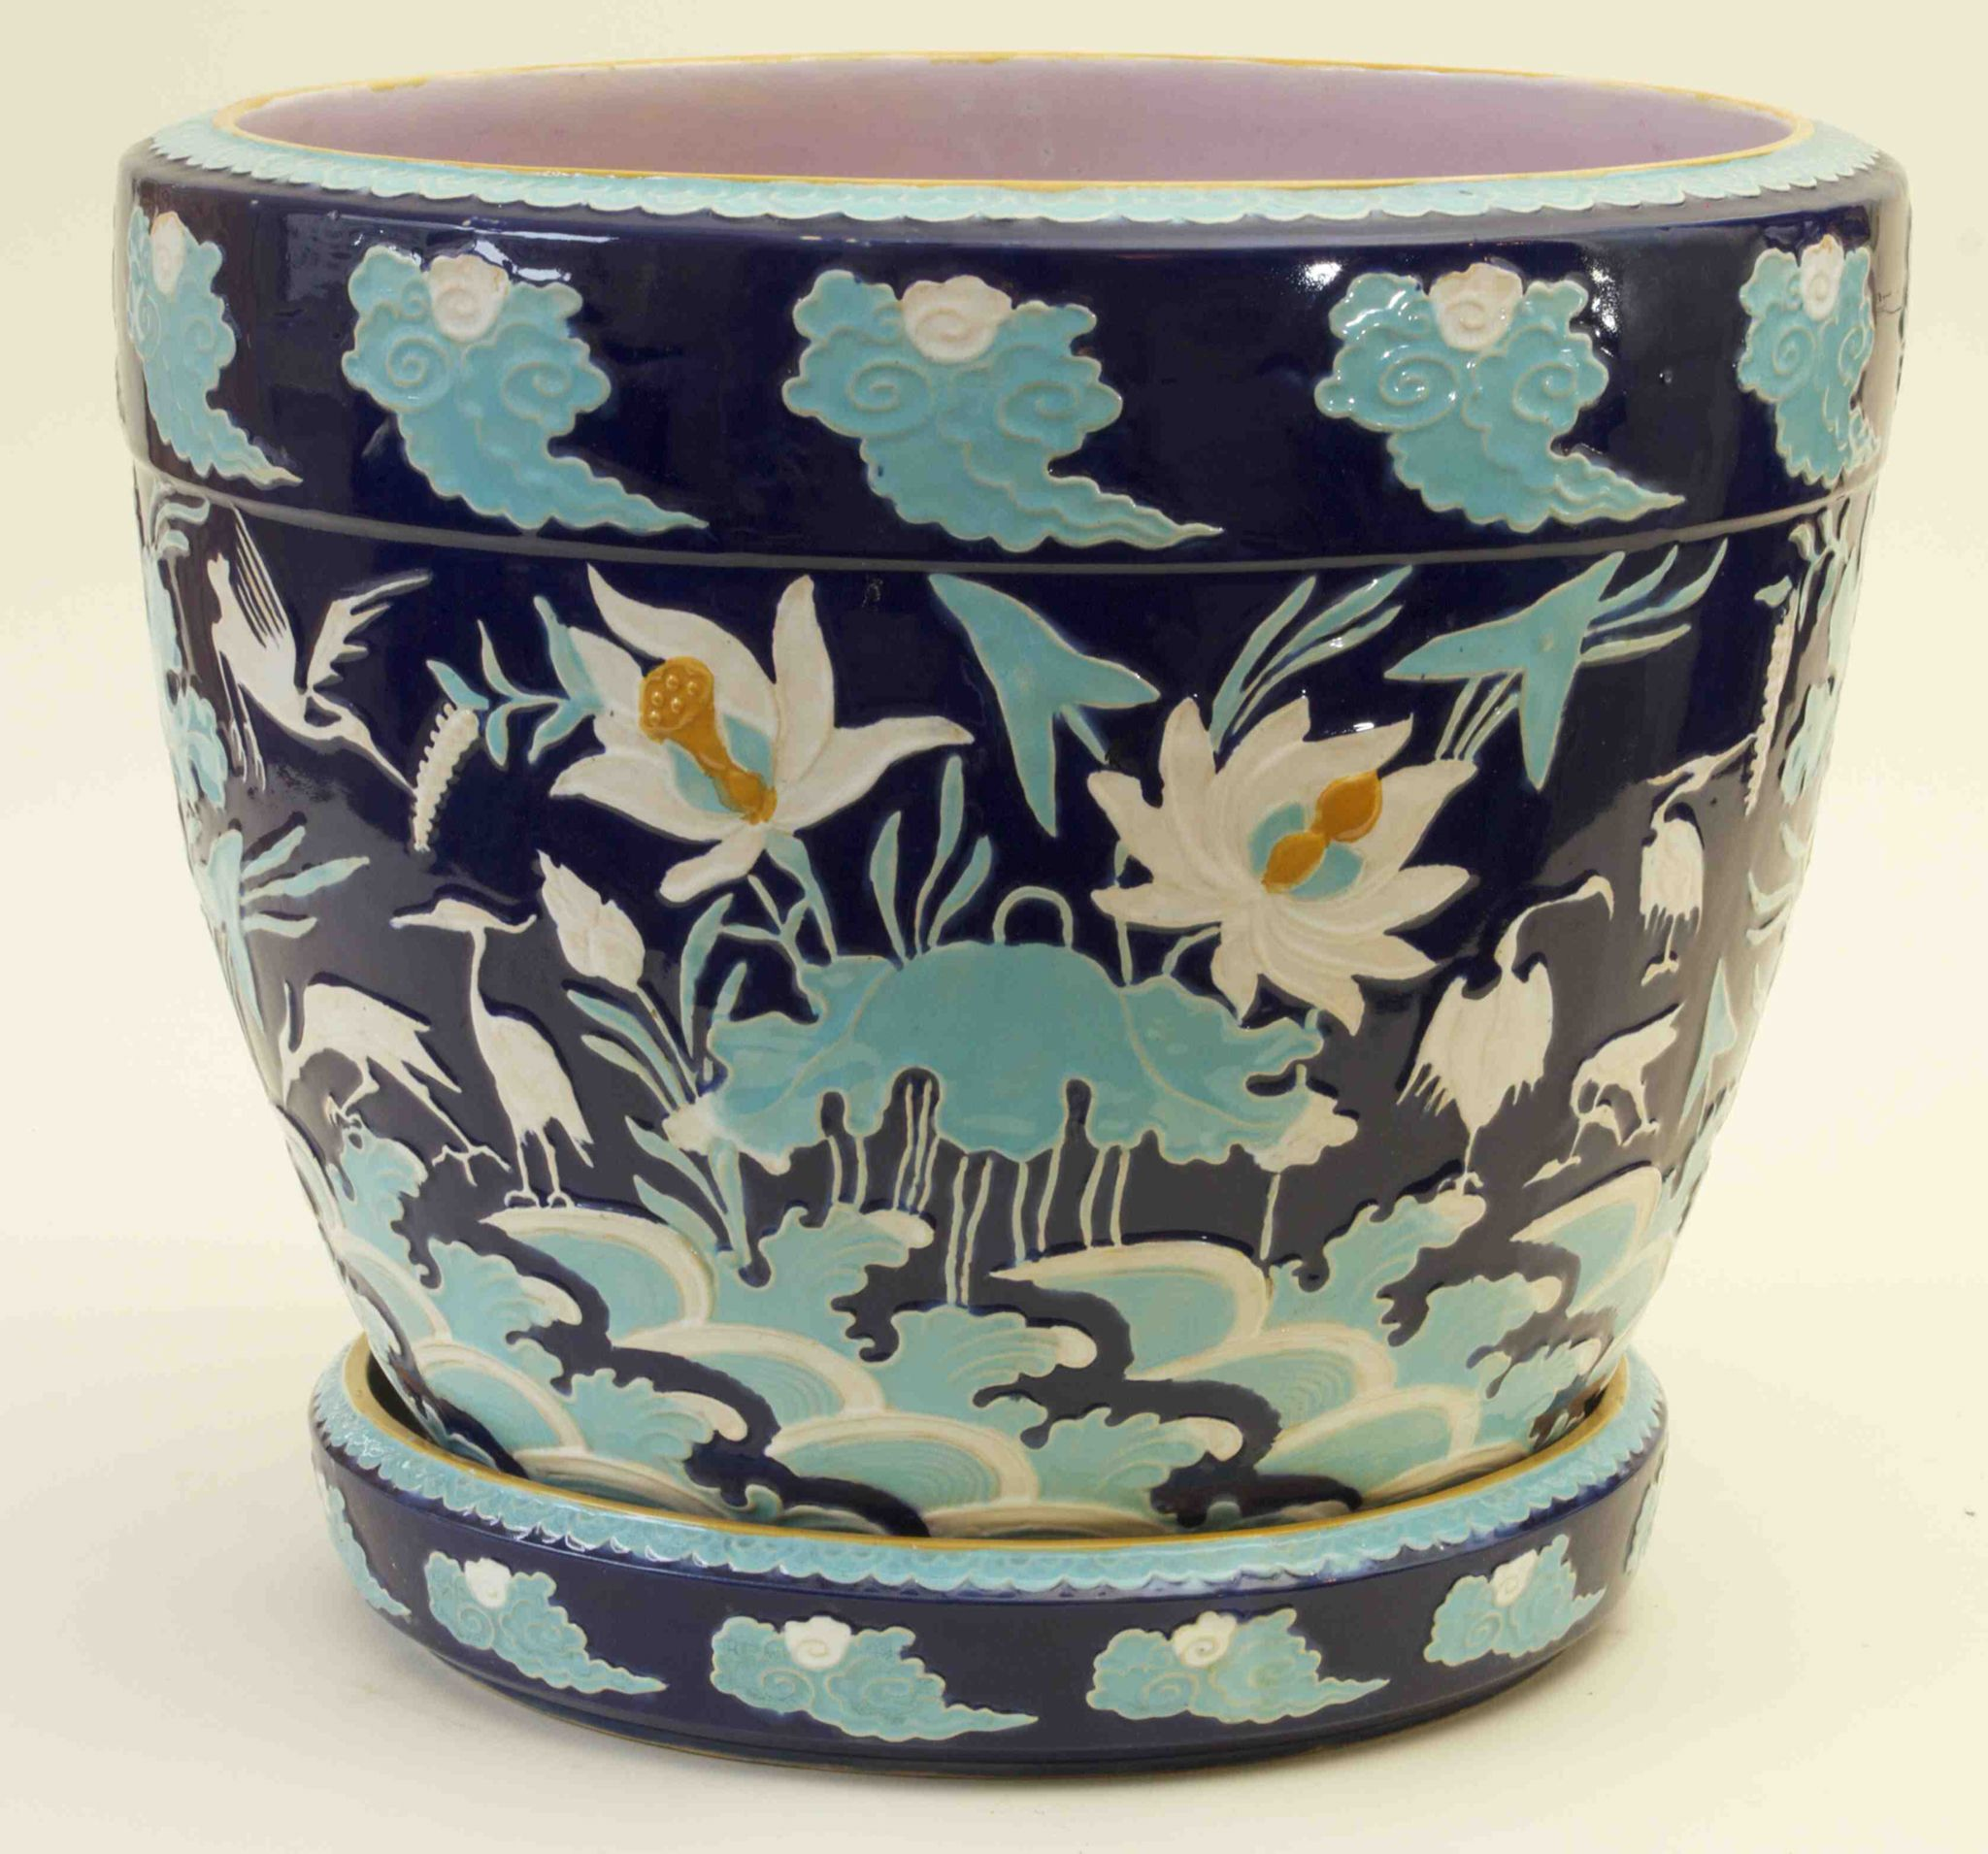 Image from the Majolica International Society, Karmason Library. Member's collection. Minton Majolica Cobalt/Turquoise Jardinière